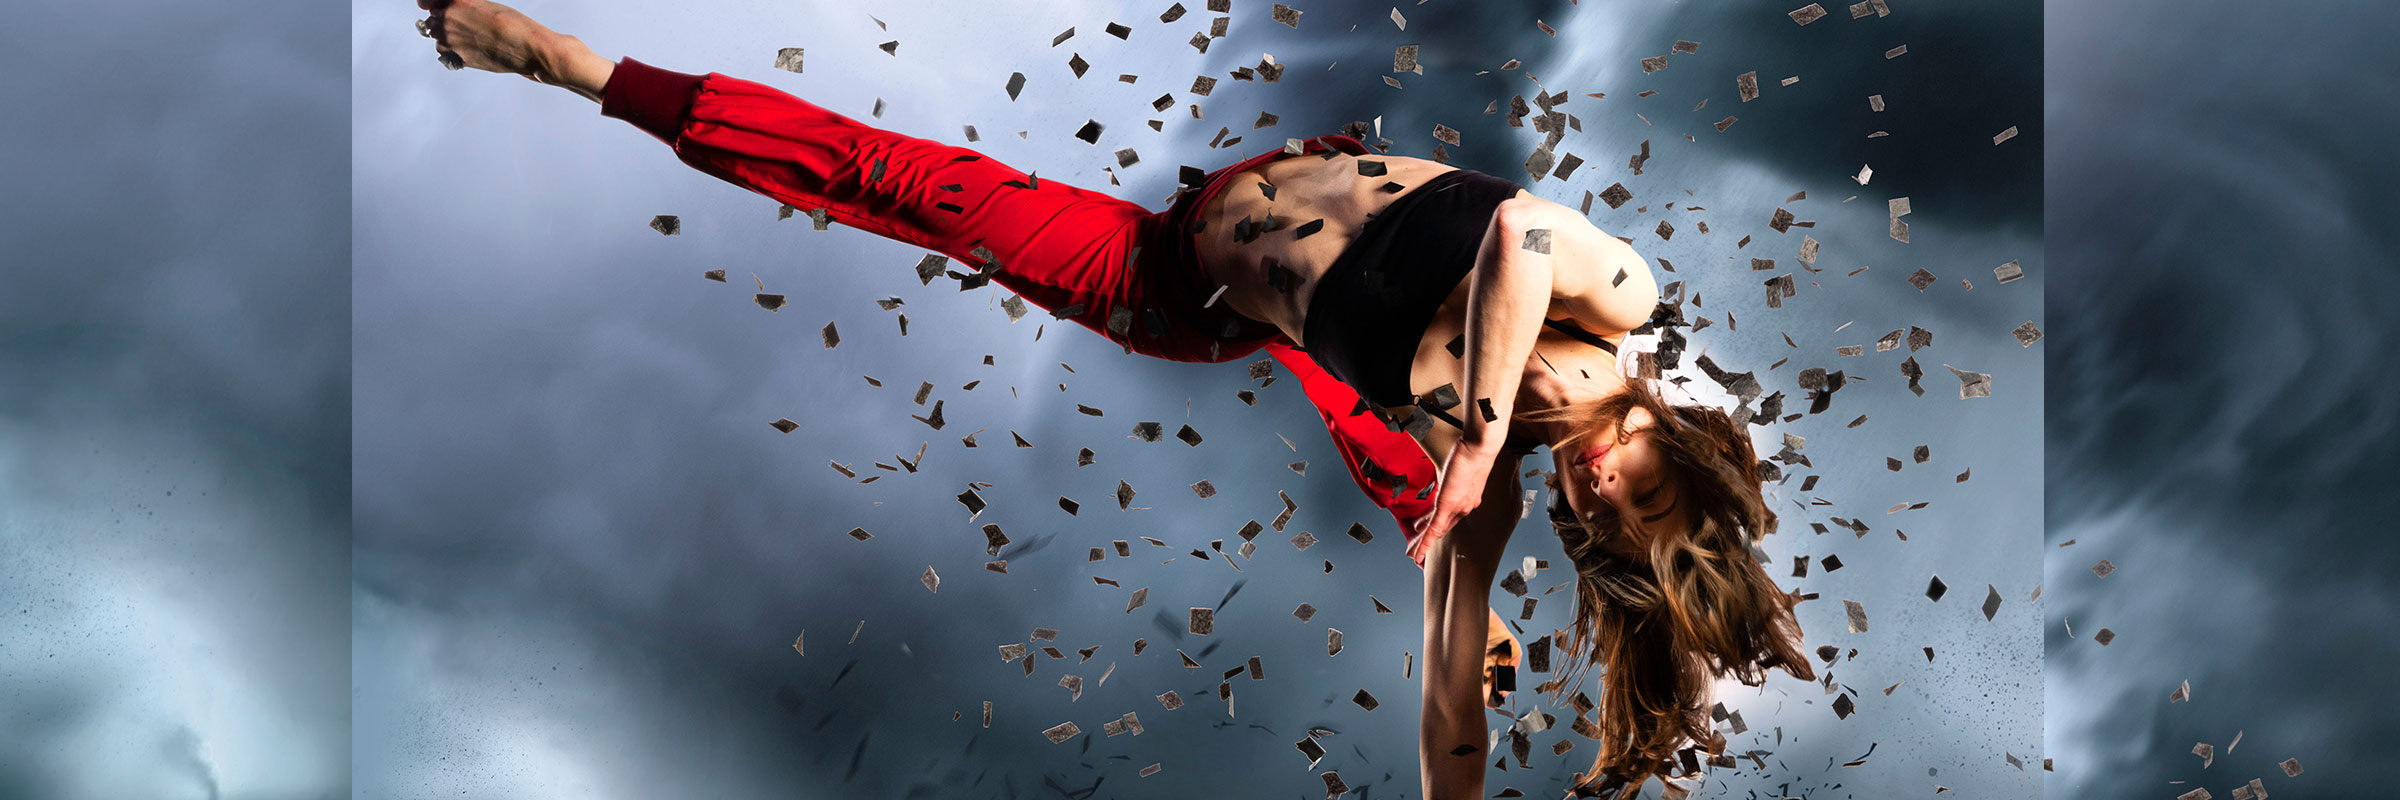 The Storm by James Wilton Dance